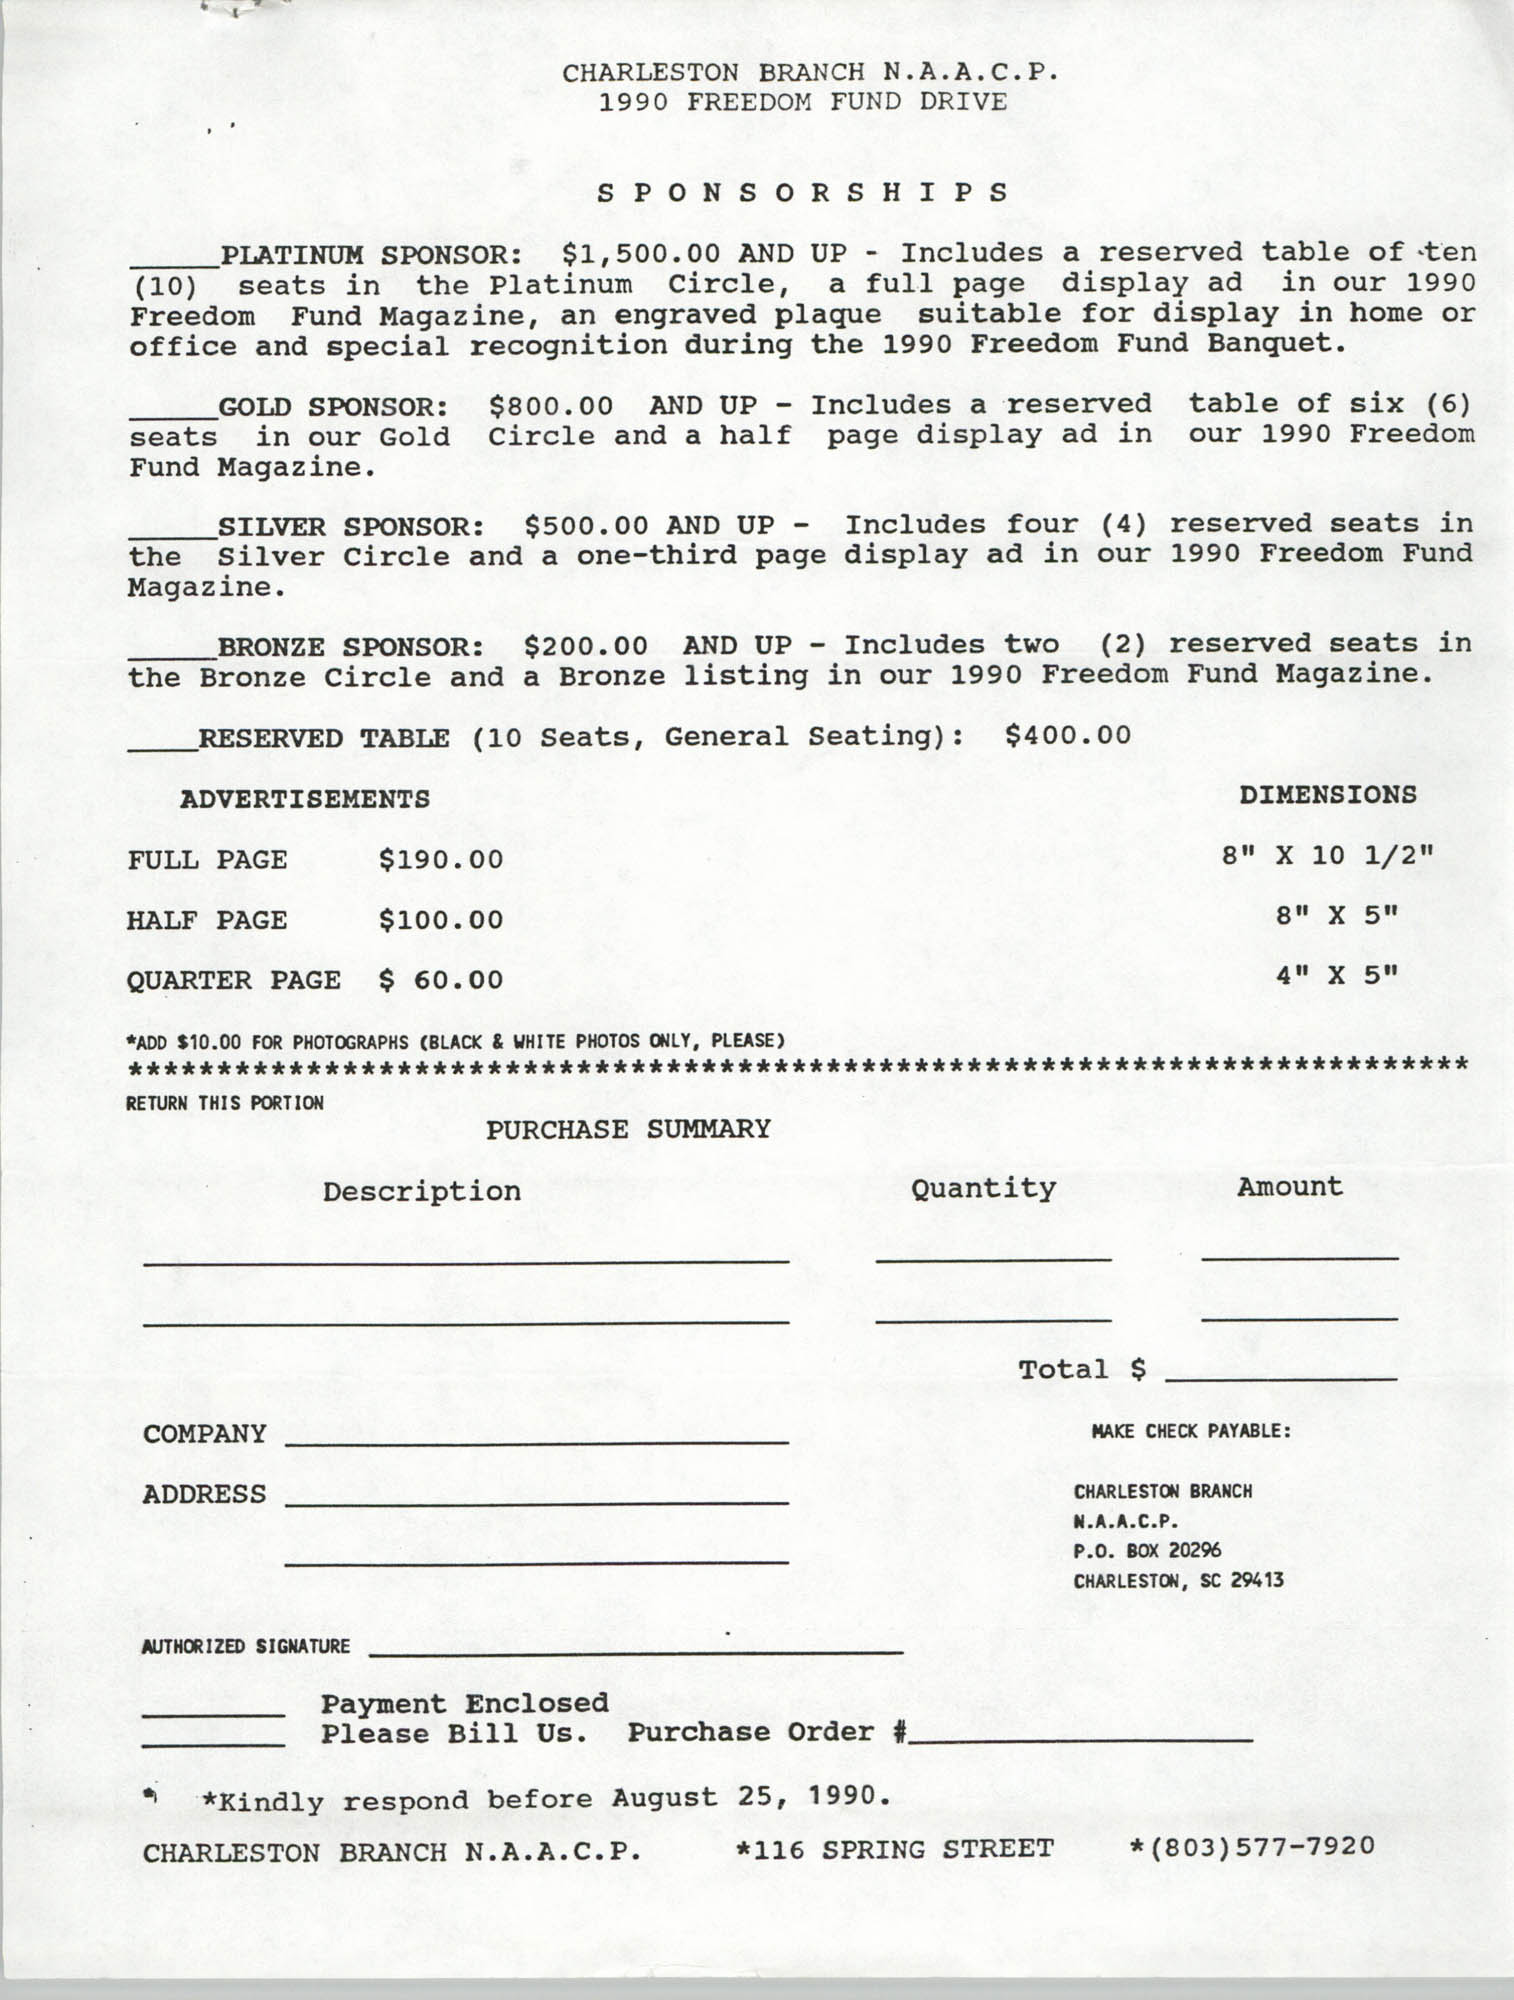 Sponsorships Forms, 1990 Freedom Fund Drive, National Association for the Advancement of Colored People